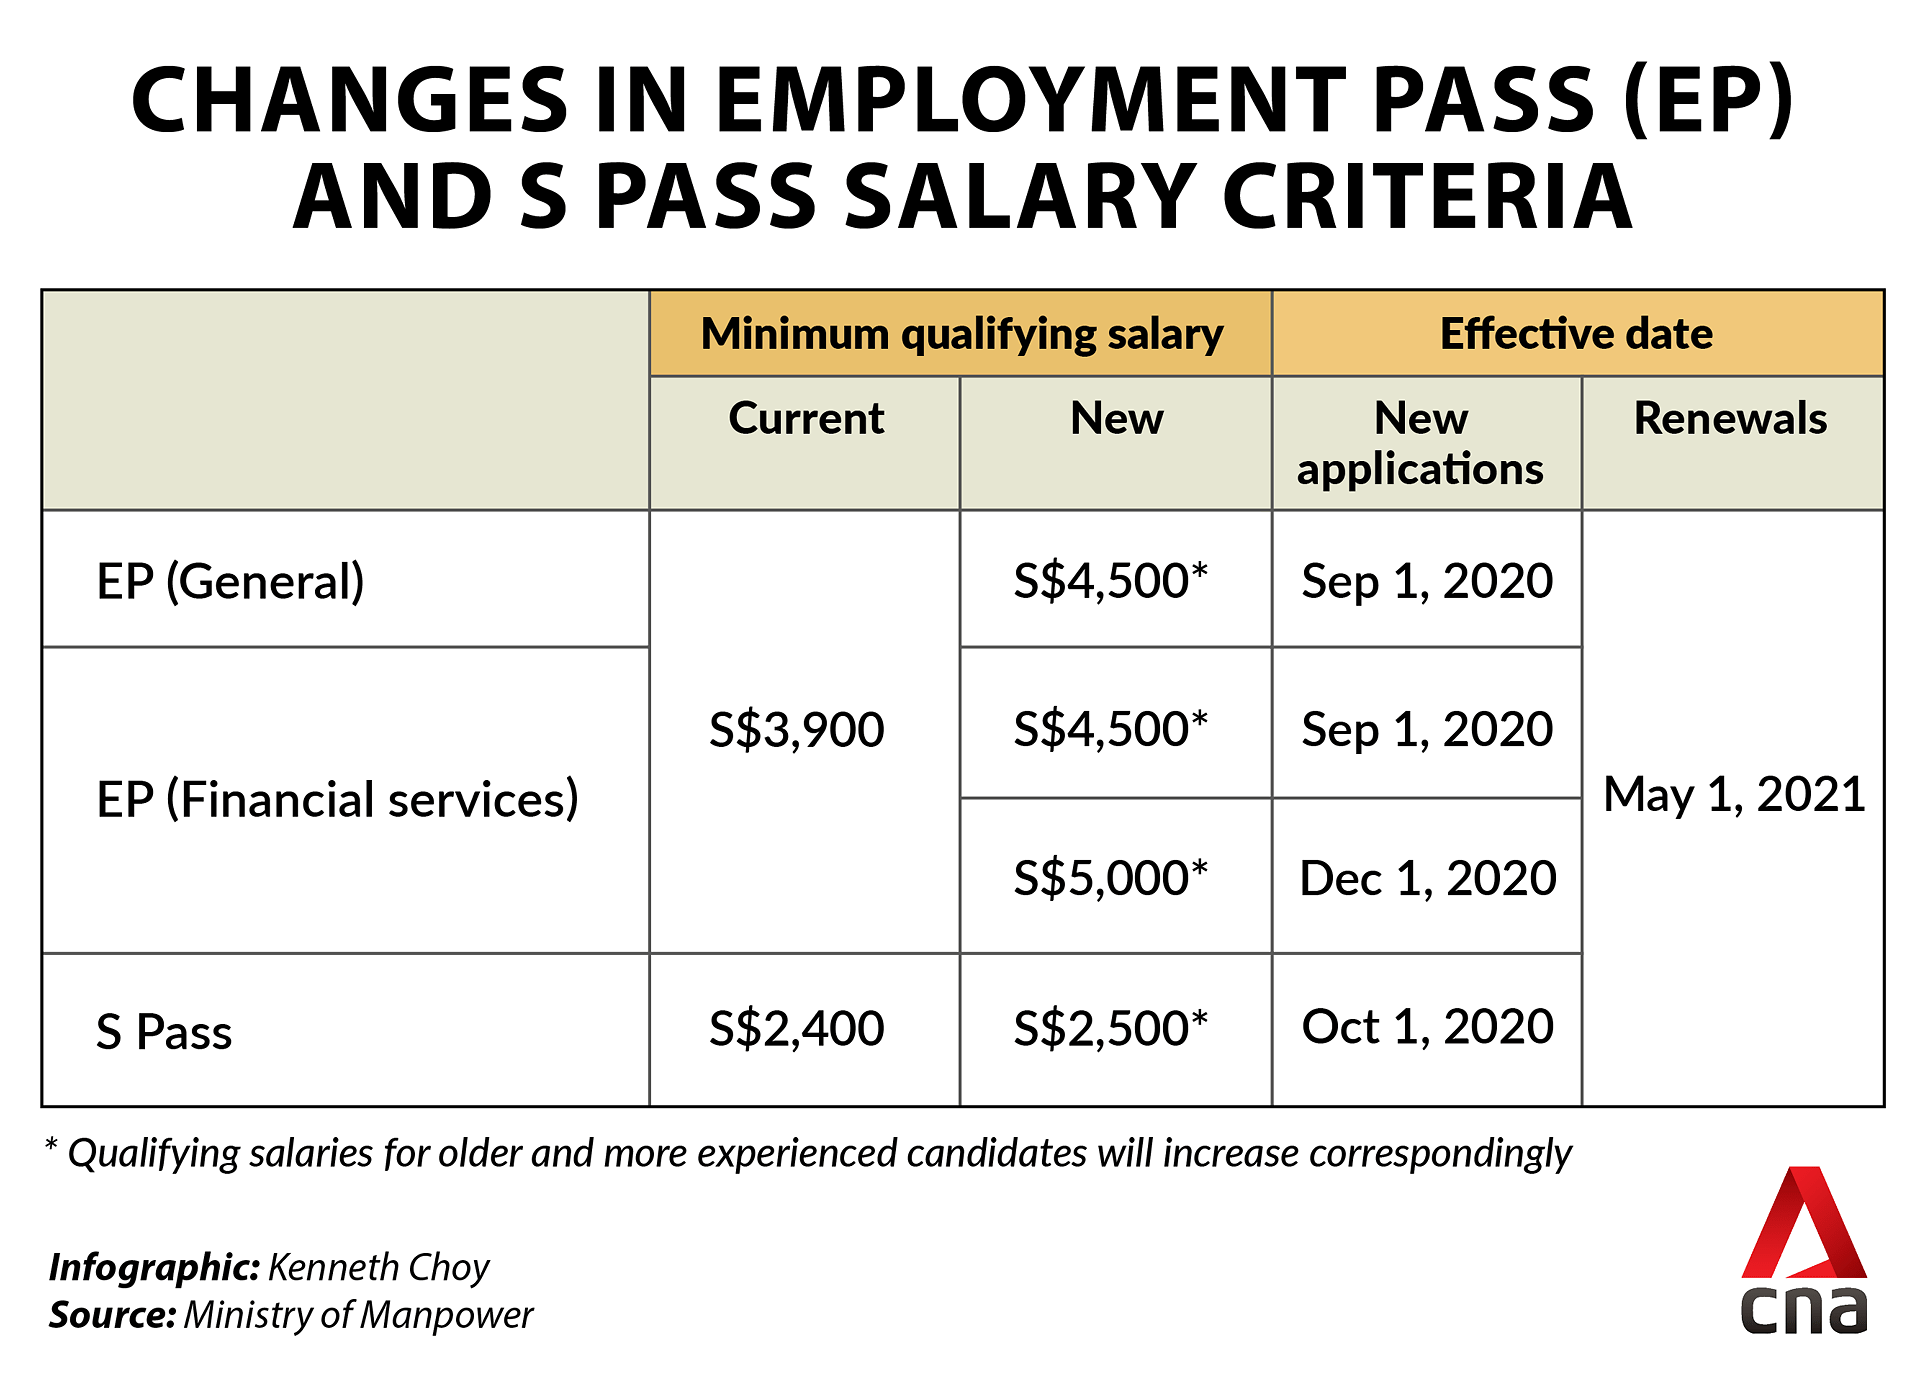 Minimum qualifying salary to rise by S$600 for Employment Passes and S$100 for S Passes